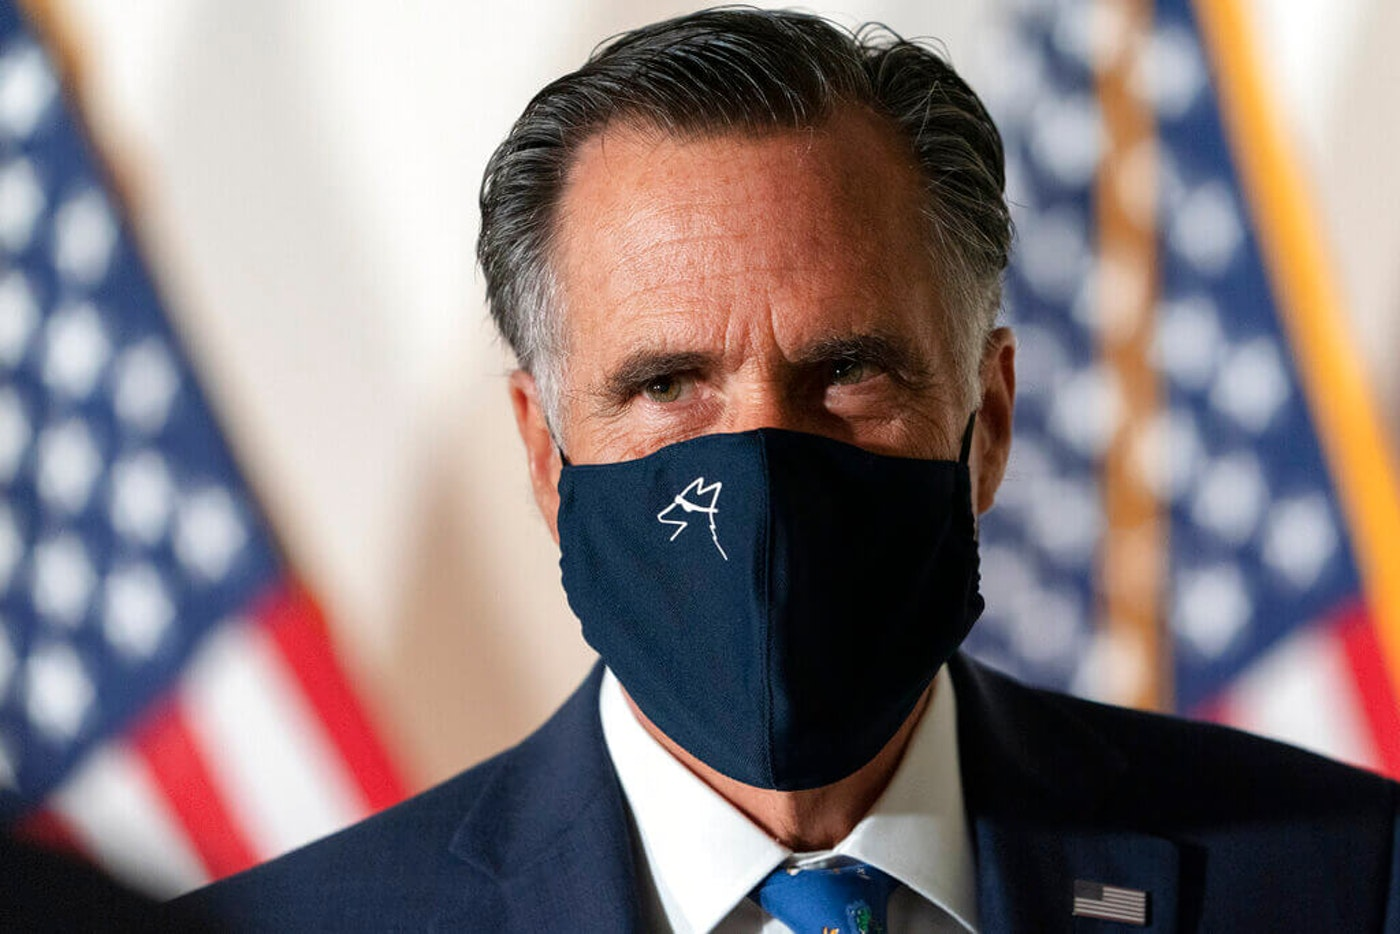 Sen. Mitt Romney, R-Utah, arrives for a meeting with Senate Republicans, Wednesday, Sept. 9, 2020, on Capitol Hill in Washington. (AP Photo/Jacquelyn Martin)